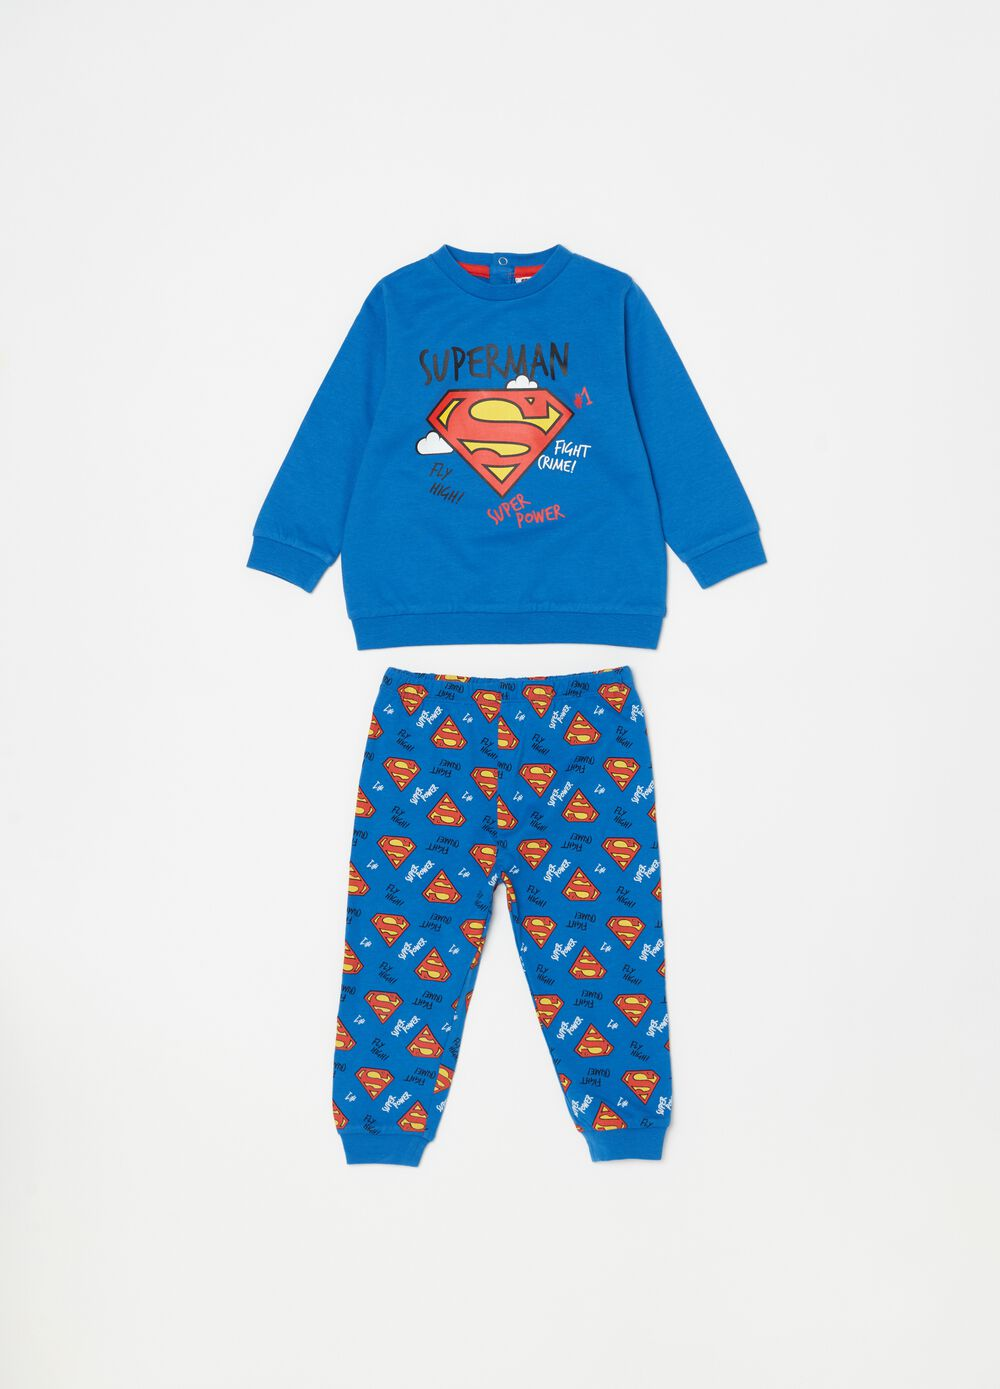 Pijama estampado Warner Bros Superman